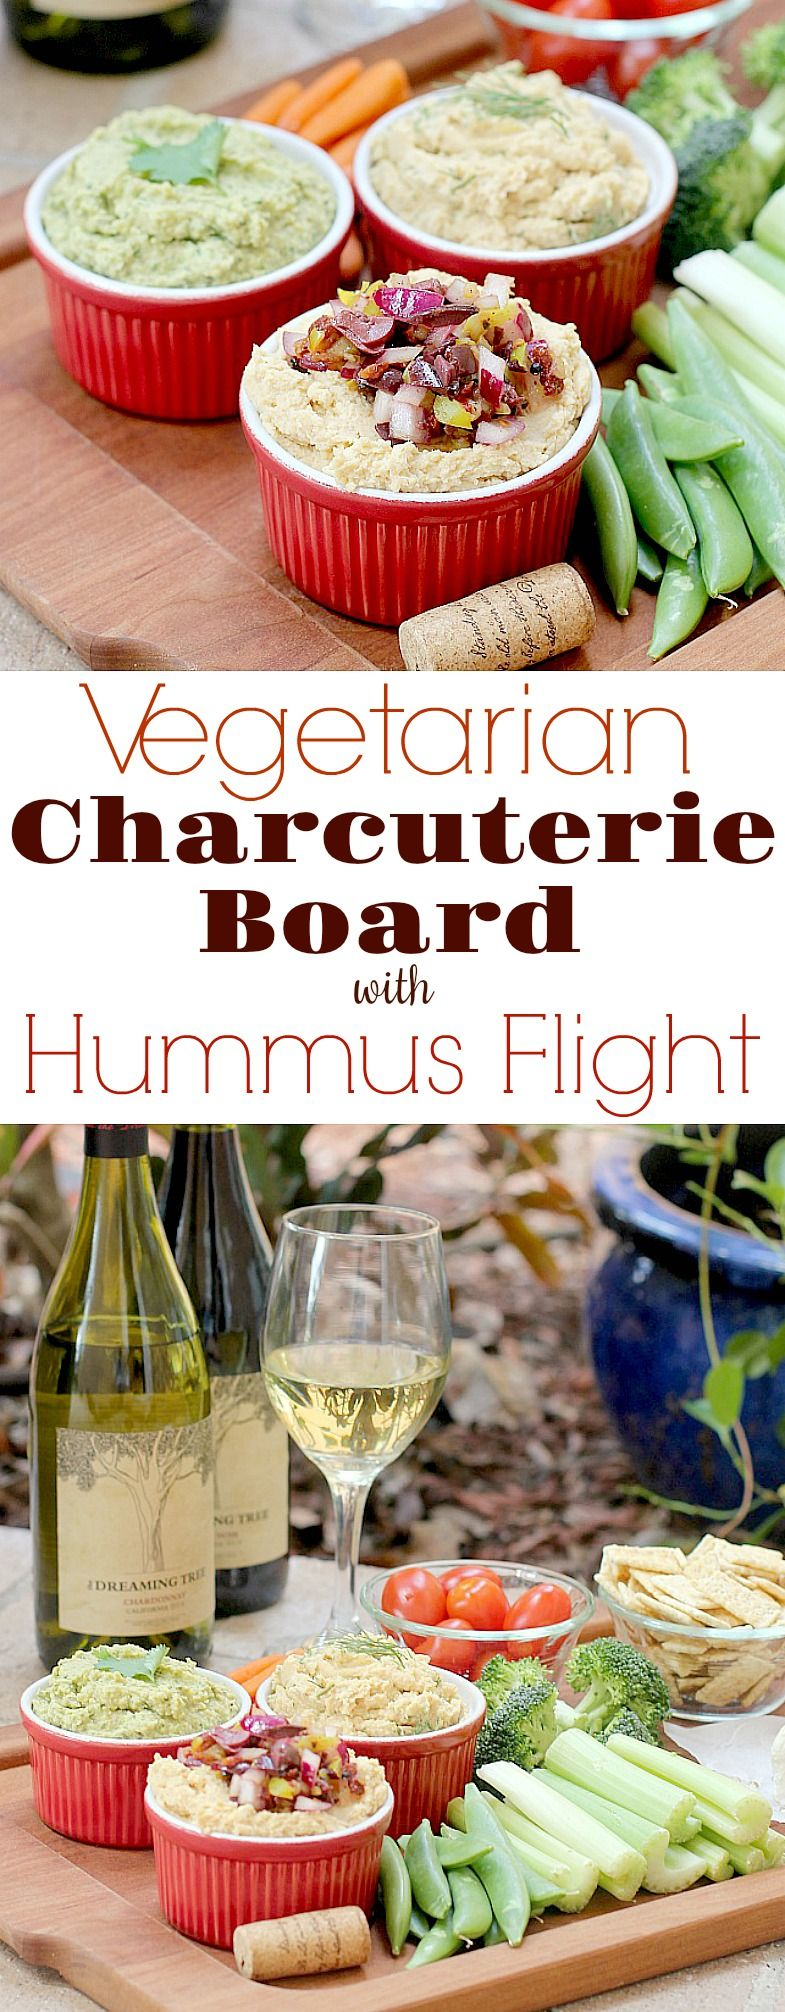 Vegetarian Charcuterie Board with Hummus Flight #charcuterieboard